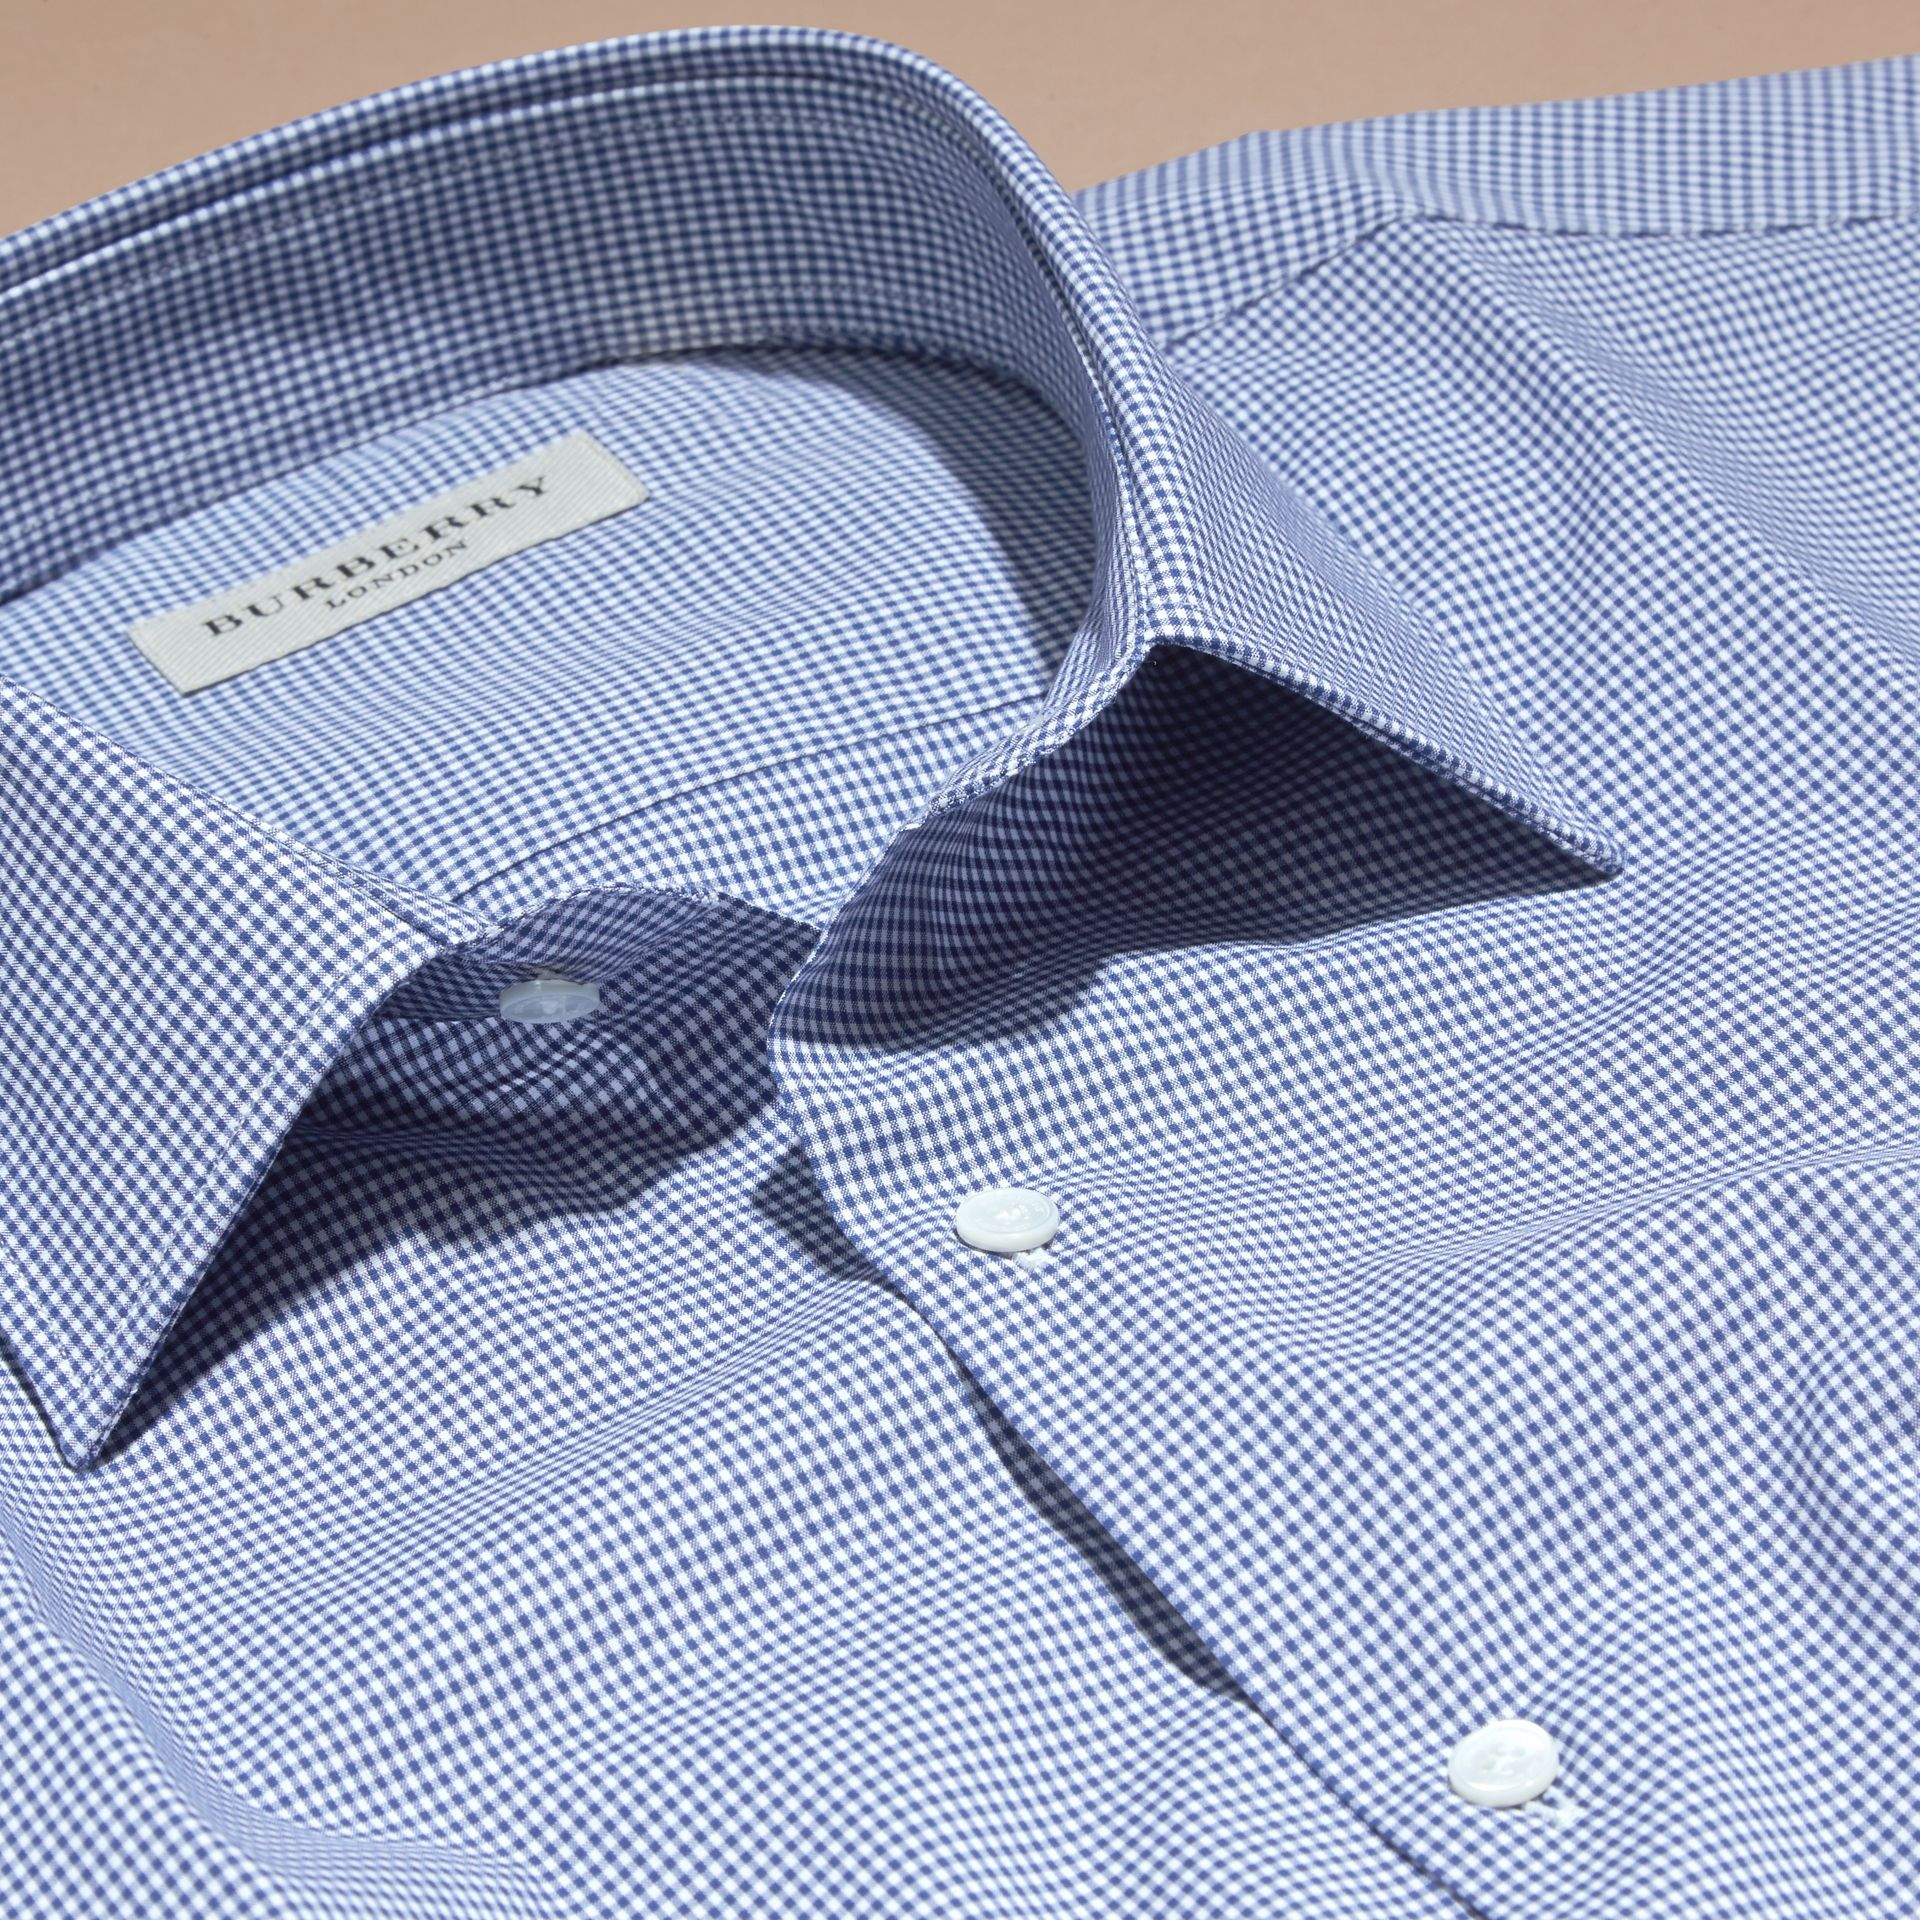 Slim Fit Gingham Cotton Poplin Shirt in Dark Empire Blue - Men | Burberry - gallery image 2